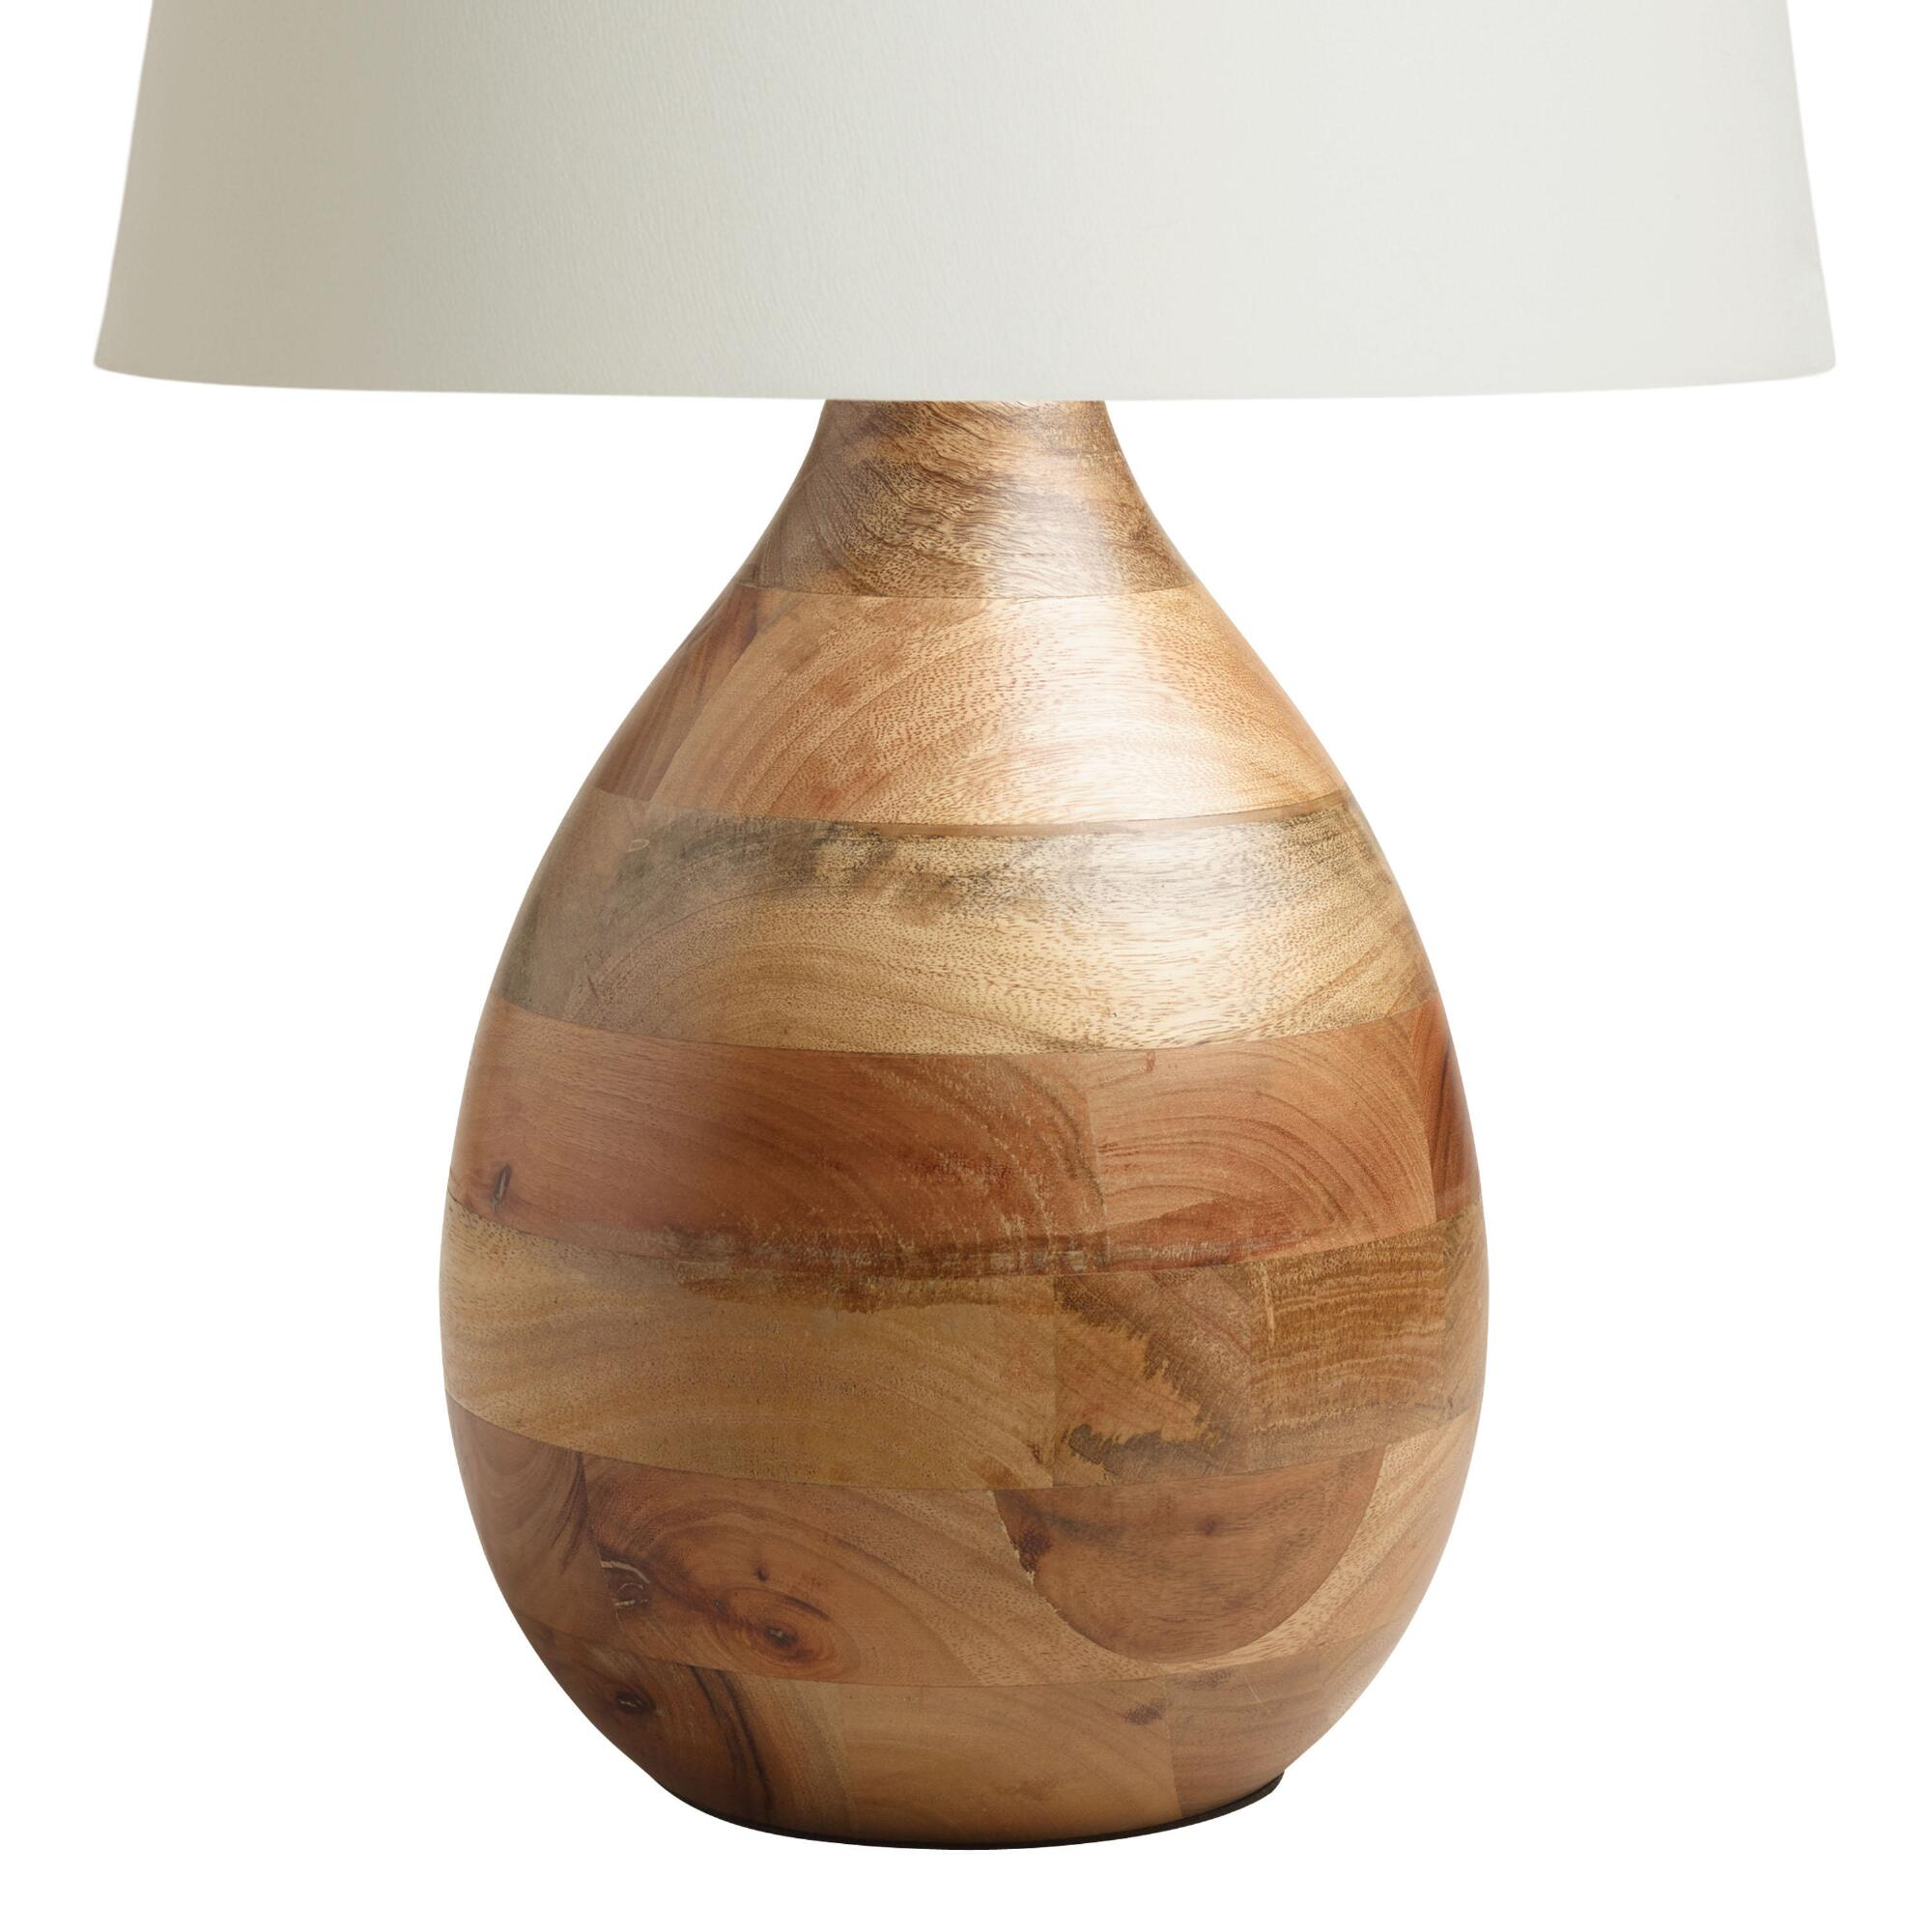 wood teardrop table lamp base world market. Black Bedroom Furniture Sets. Home Design Ideas